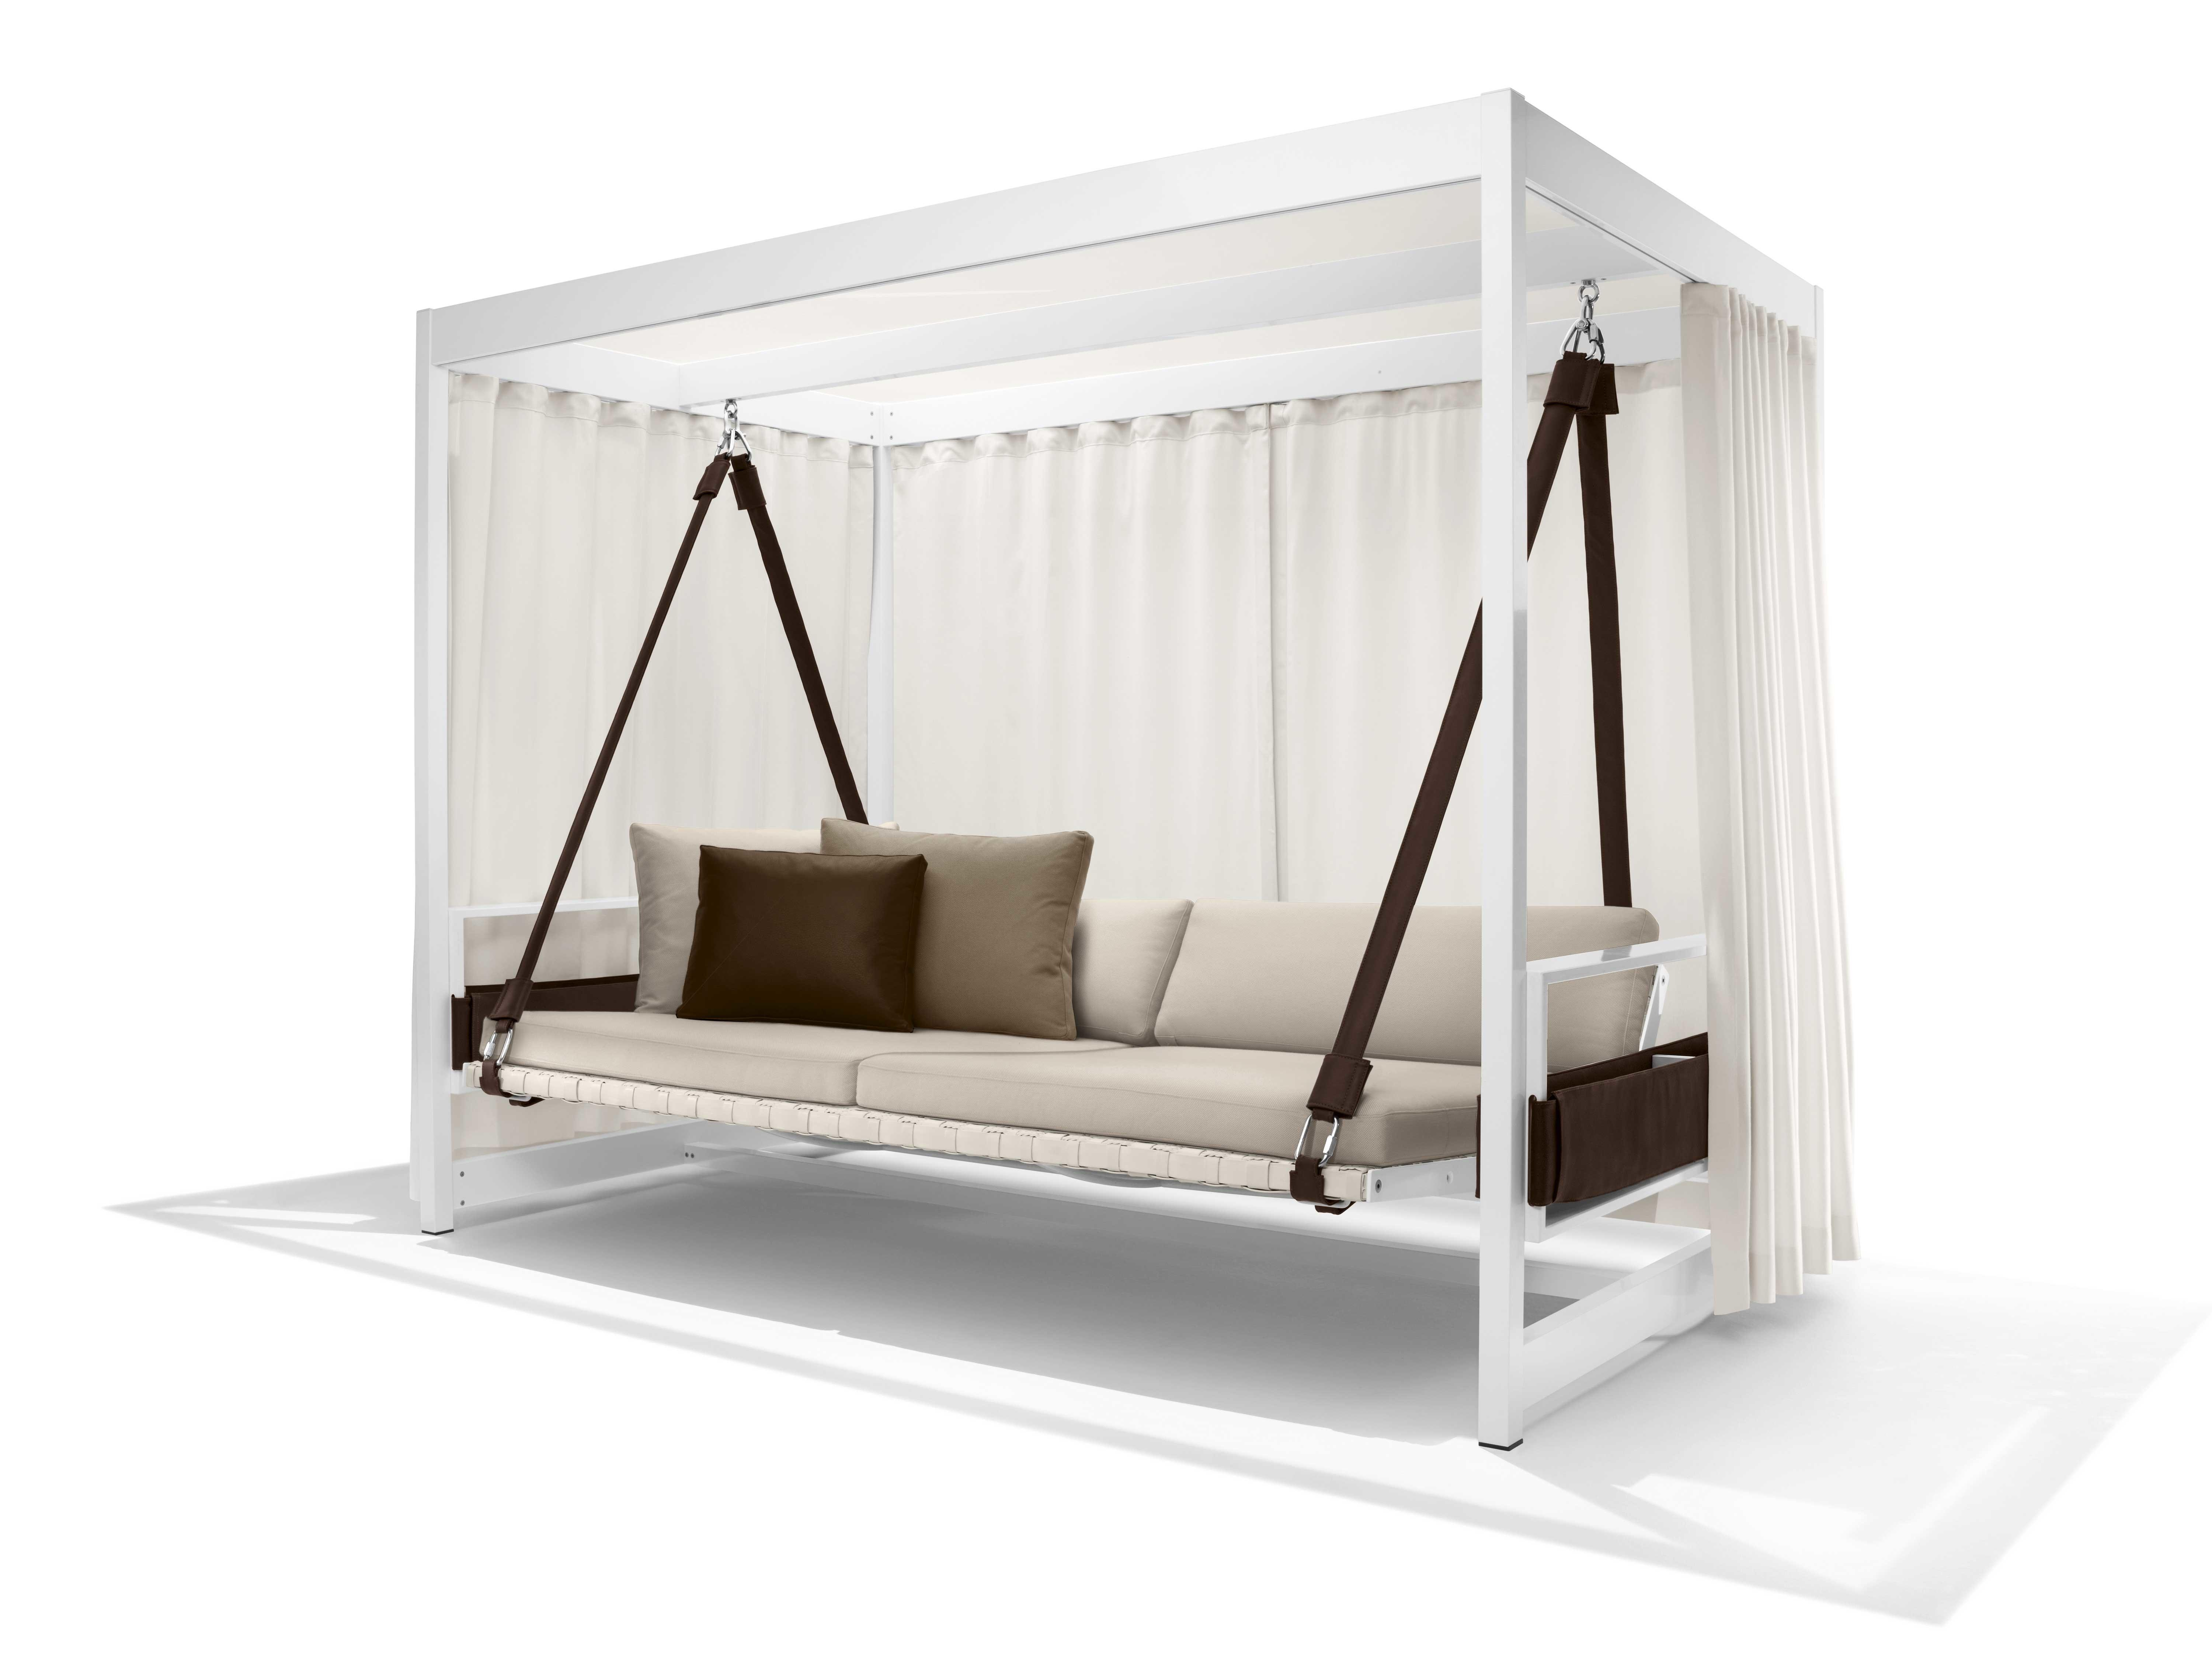 Modern White Stained Wooden Canopy Swing Day Bed